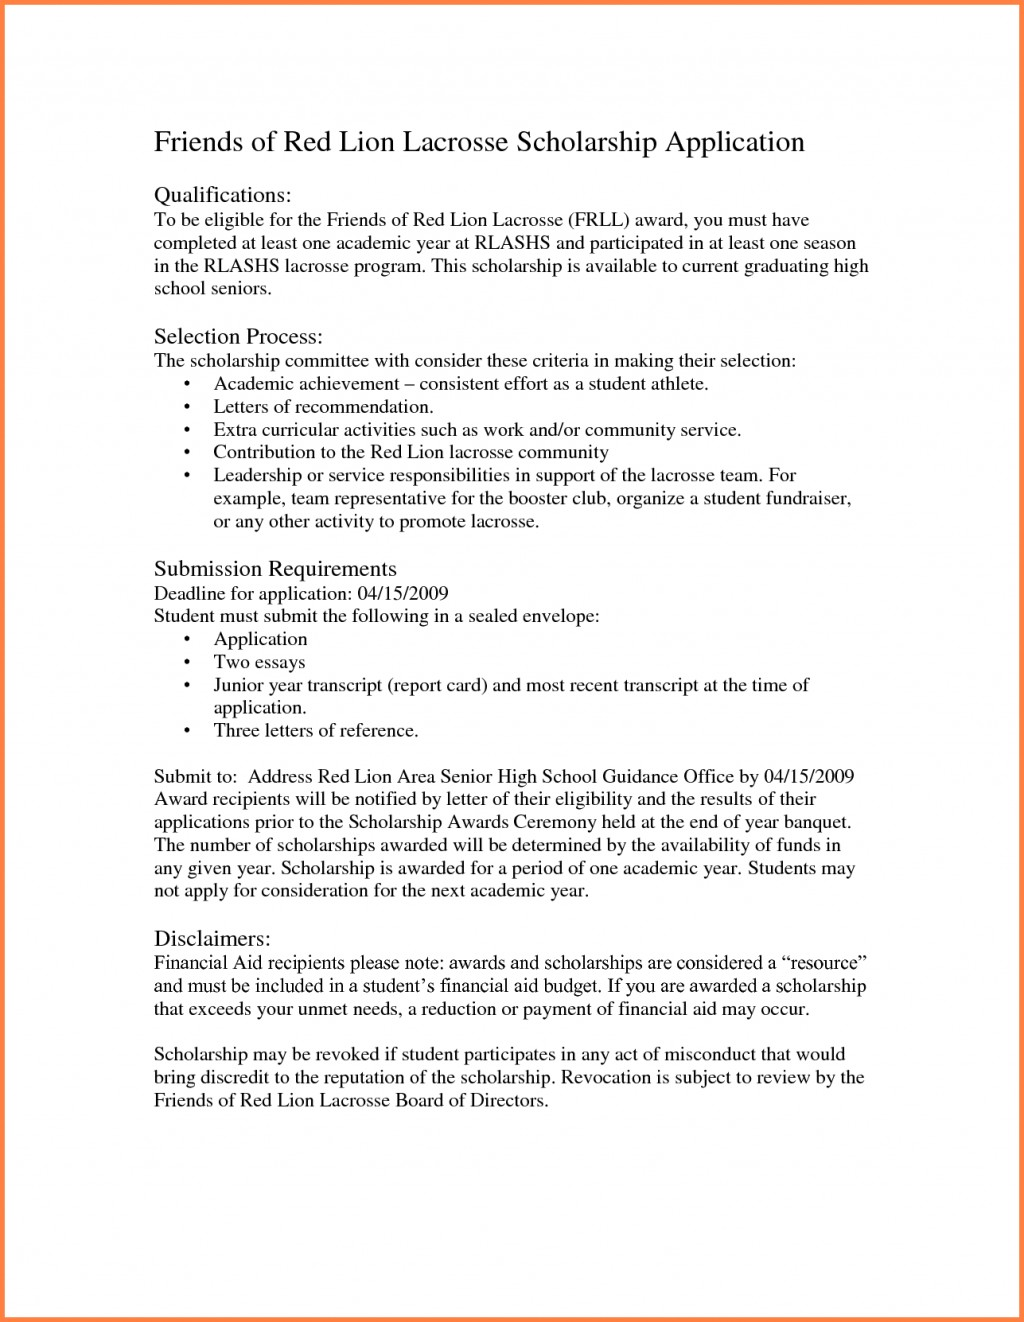 002 Why I Need Financial Aid Essay Cover Letter Samples Deserveis Scholarship College How To Contests Examples About Yourself Template Format Prompts Tips Competition Example Top Deserve This Write Pdf Sample Large